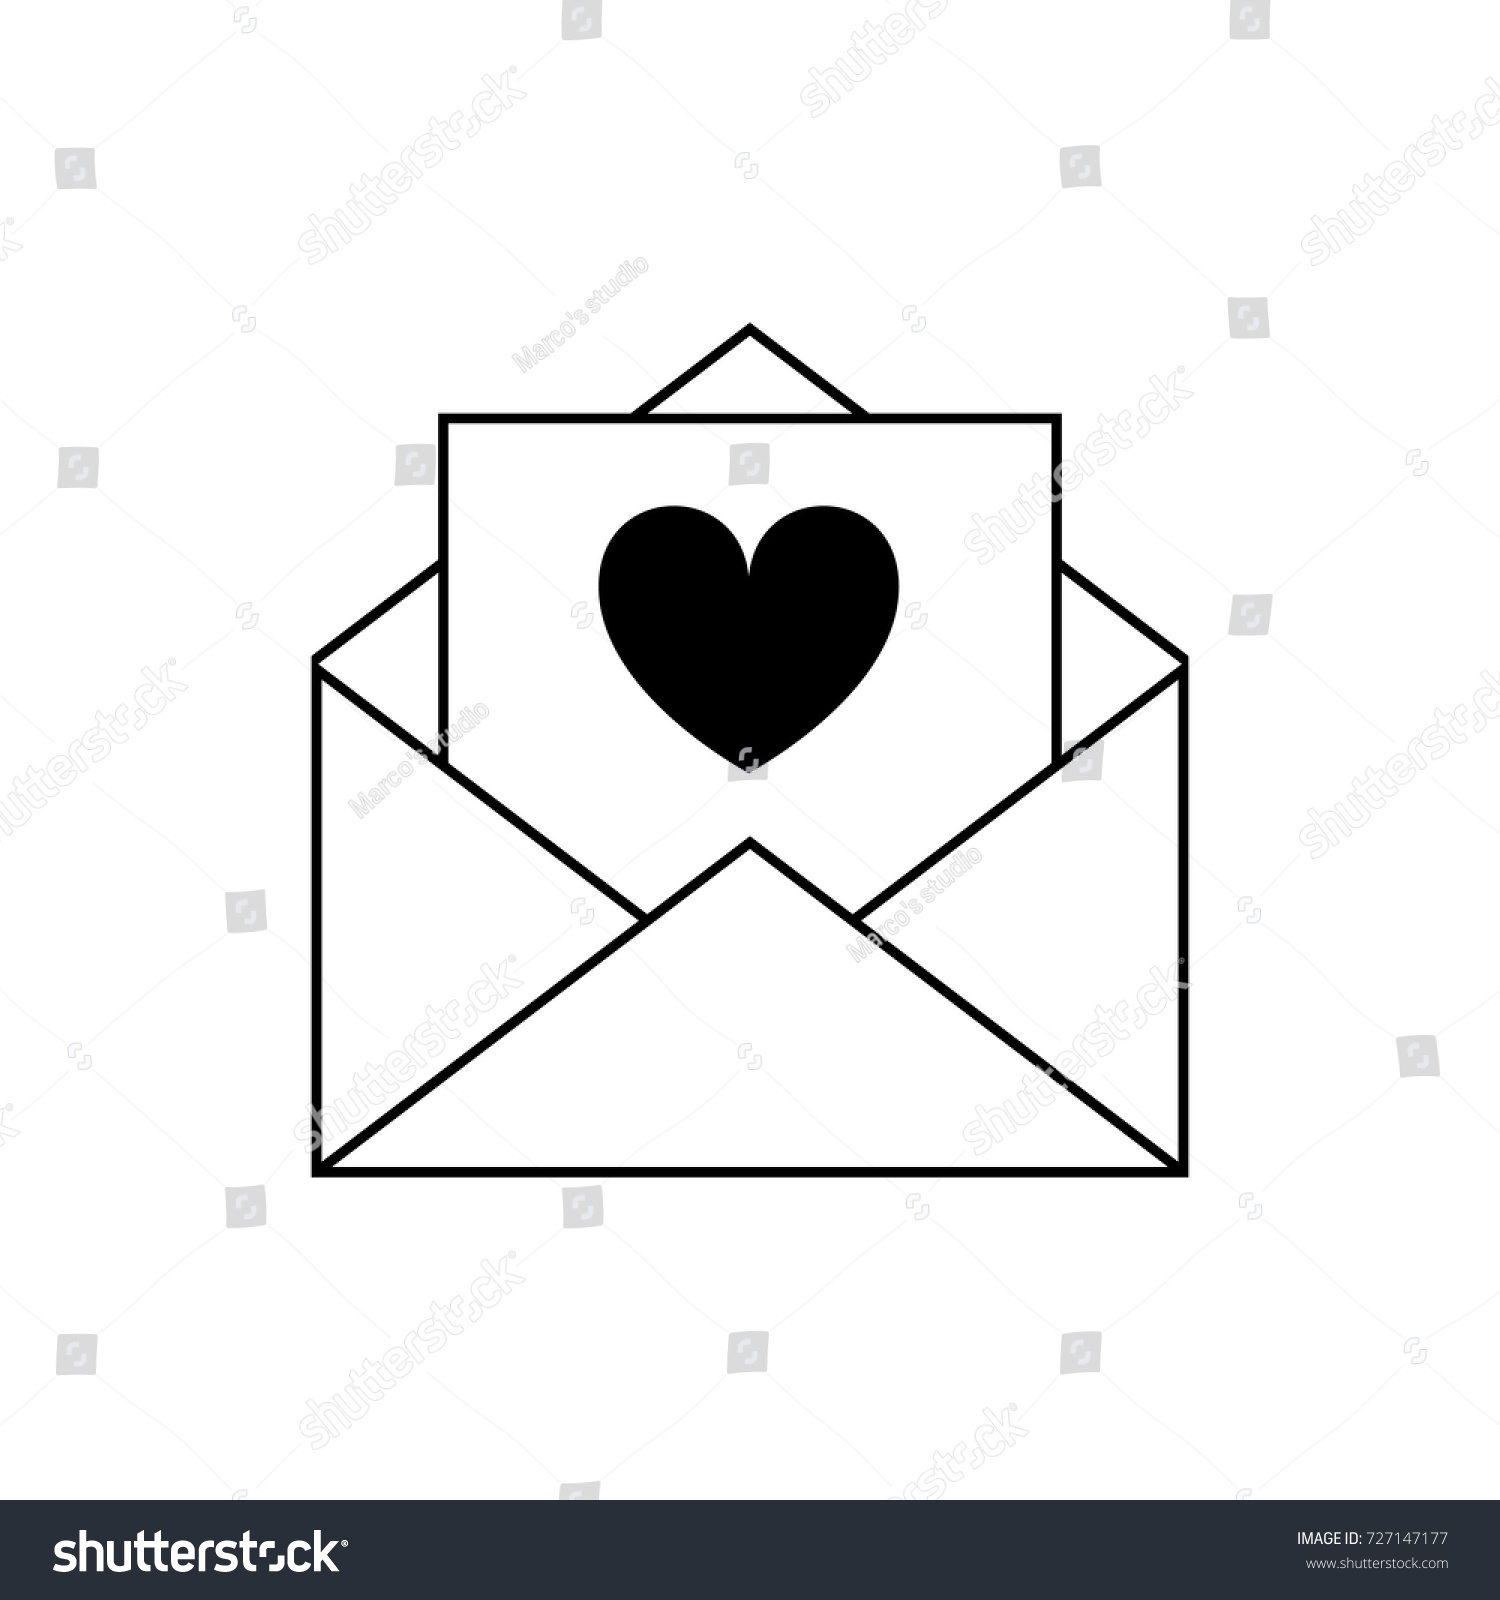 Love Letter Vector Icon Stock Vector (2018) 727147177 - Shutterstock